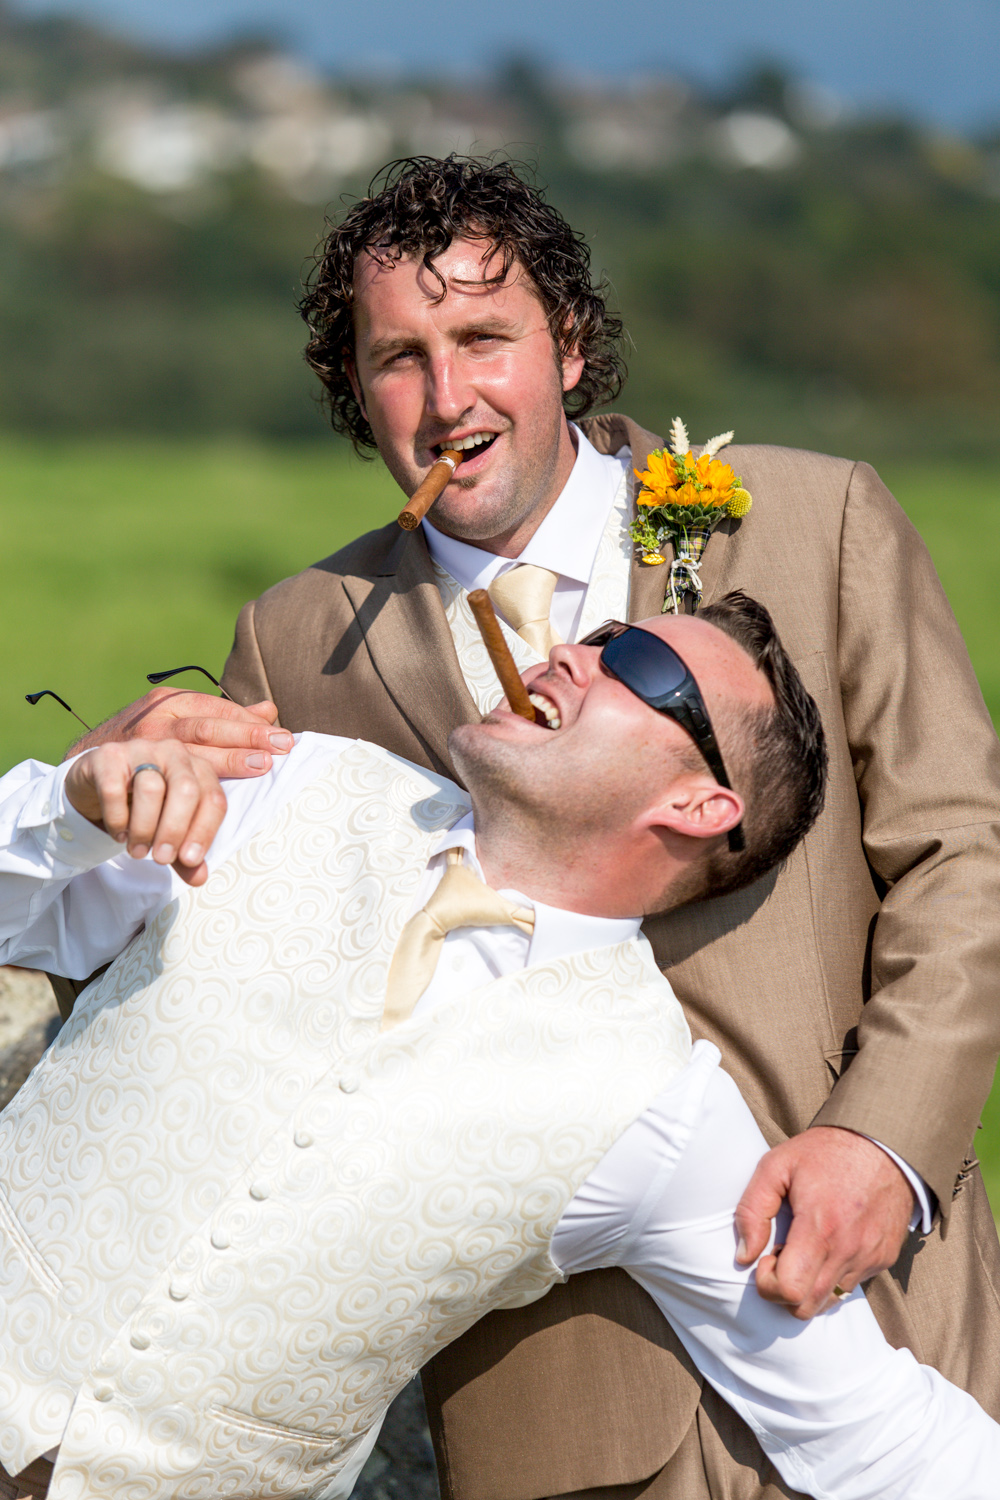 weddings_may_2015_TOM_NICHOLSON_031.jpg